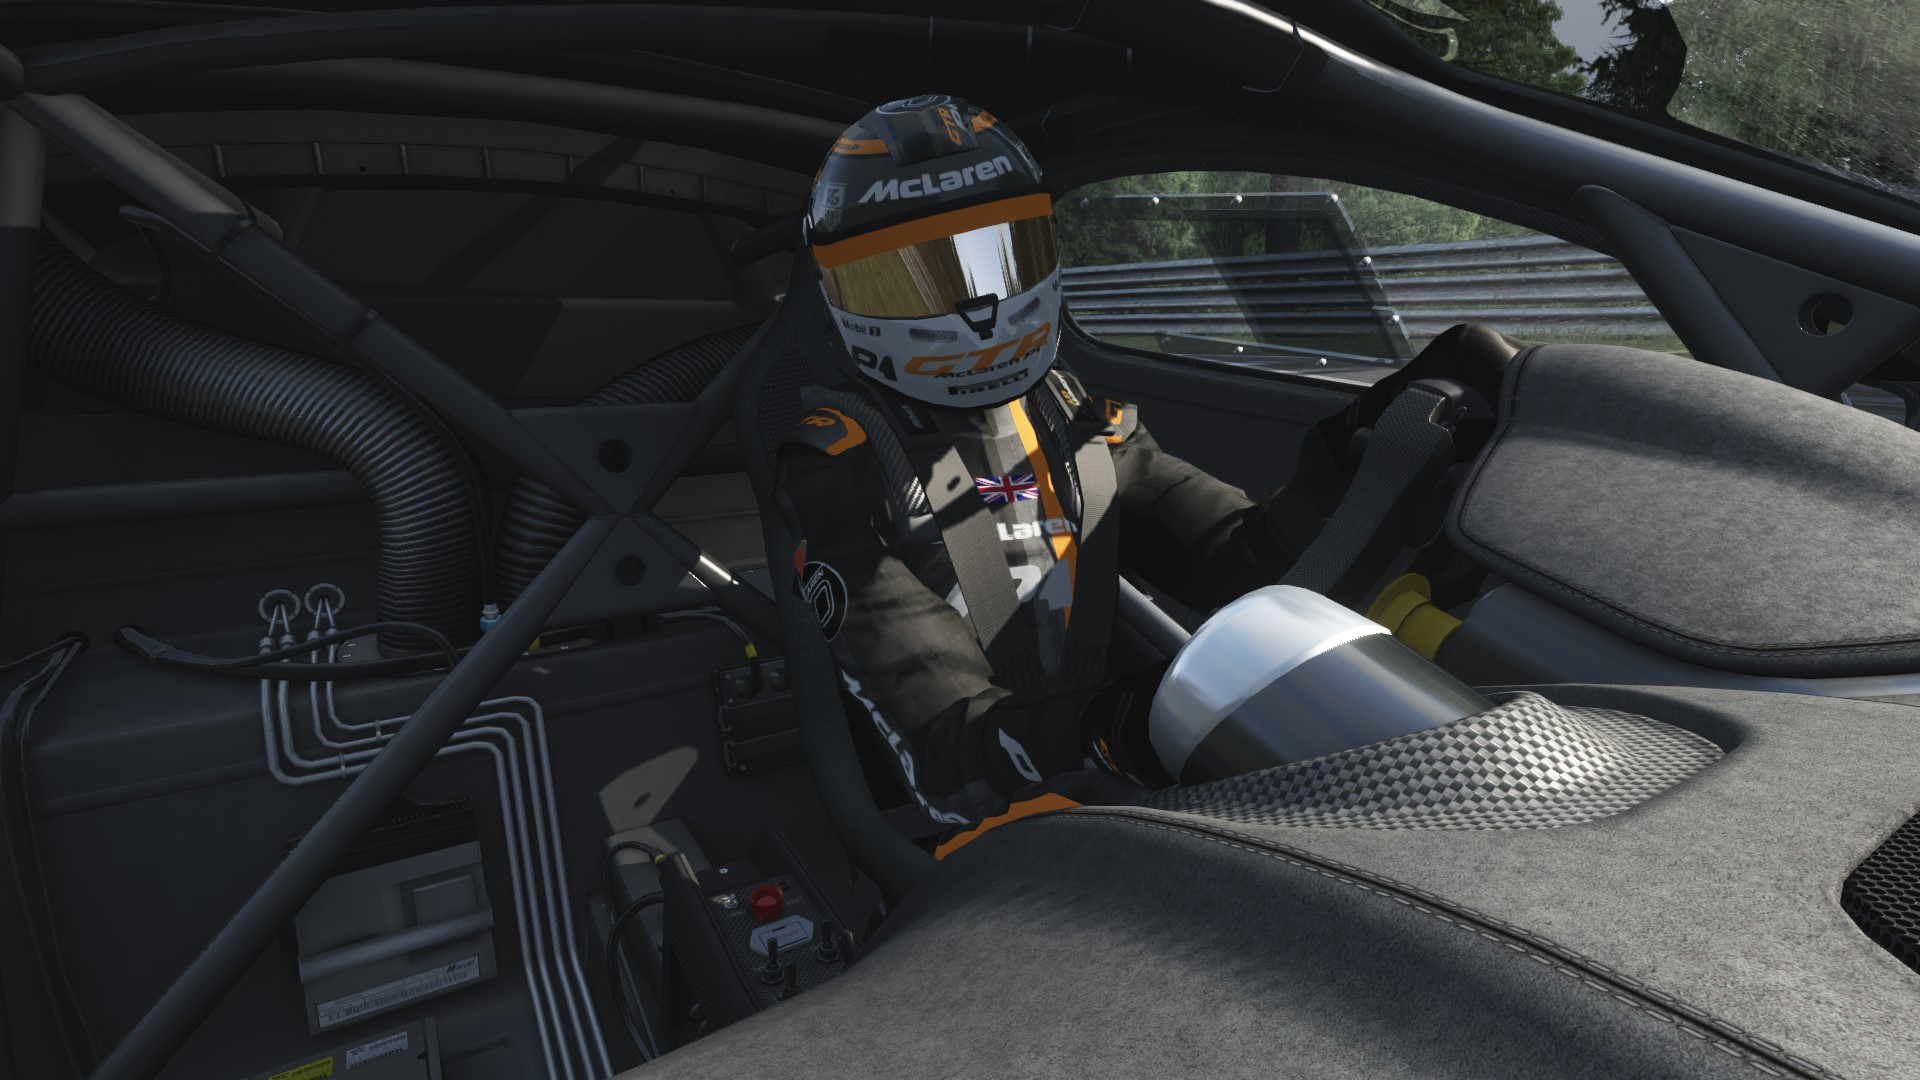 Screenshot_mclaren_mp412c_gt3_ks_nordschleife_13-3-115-15-32-22.jpg